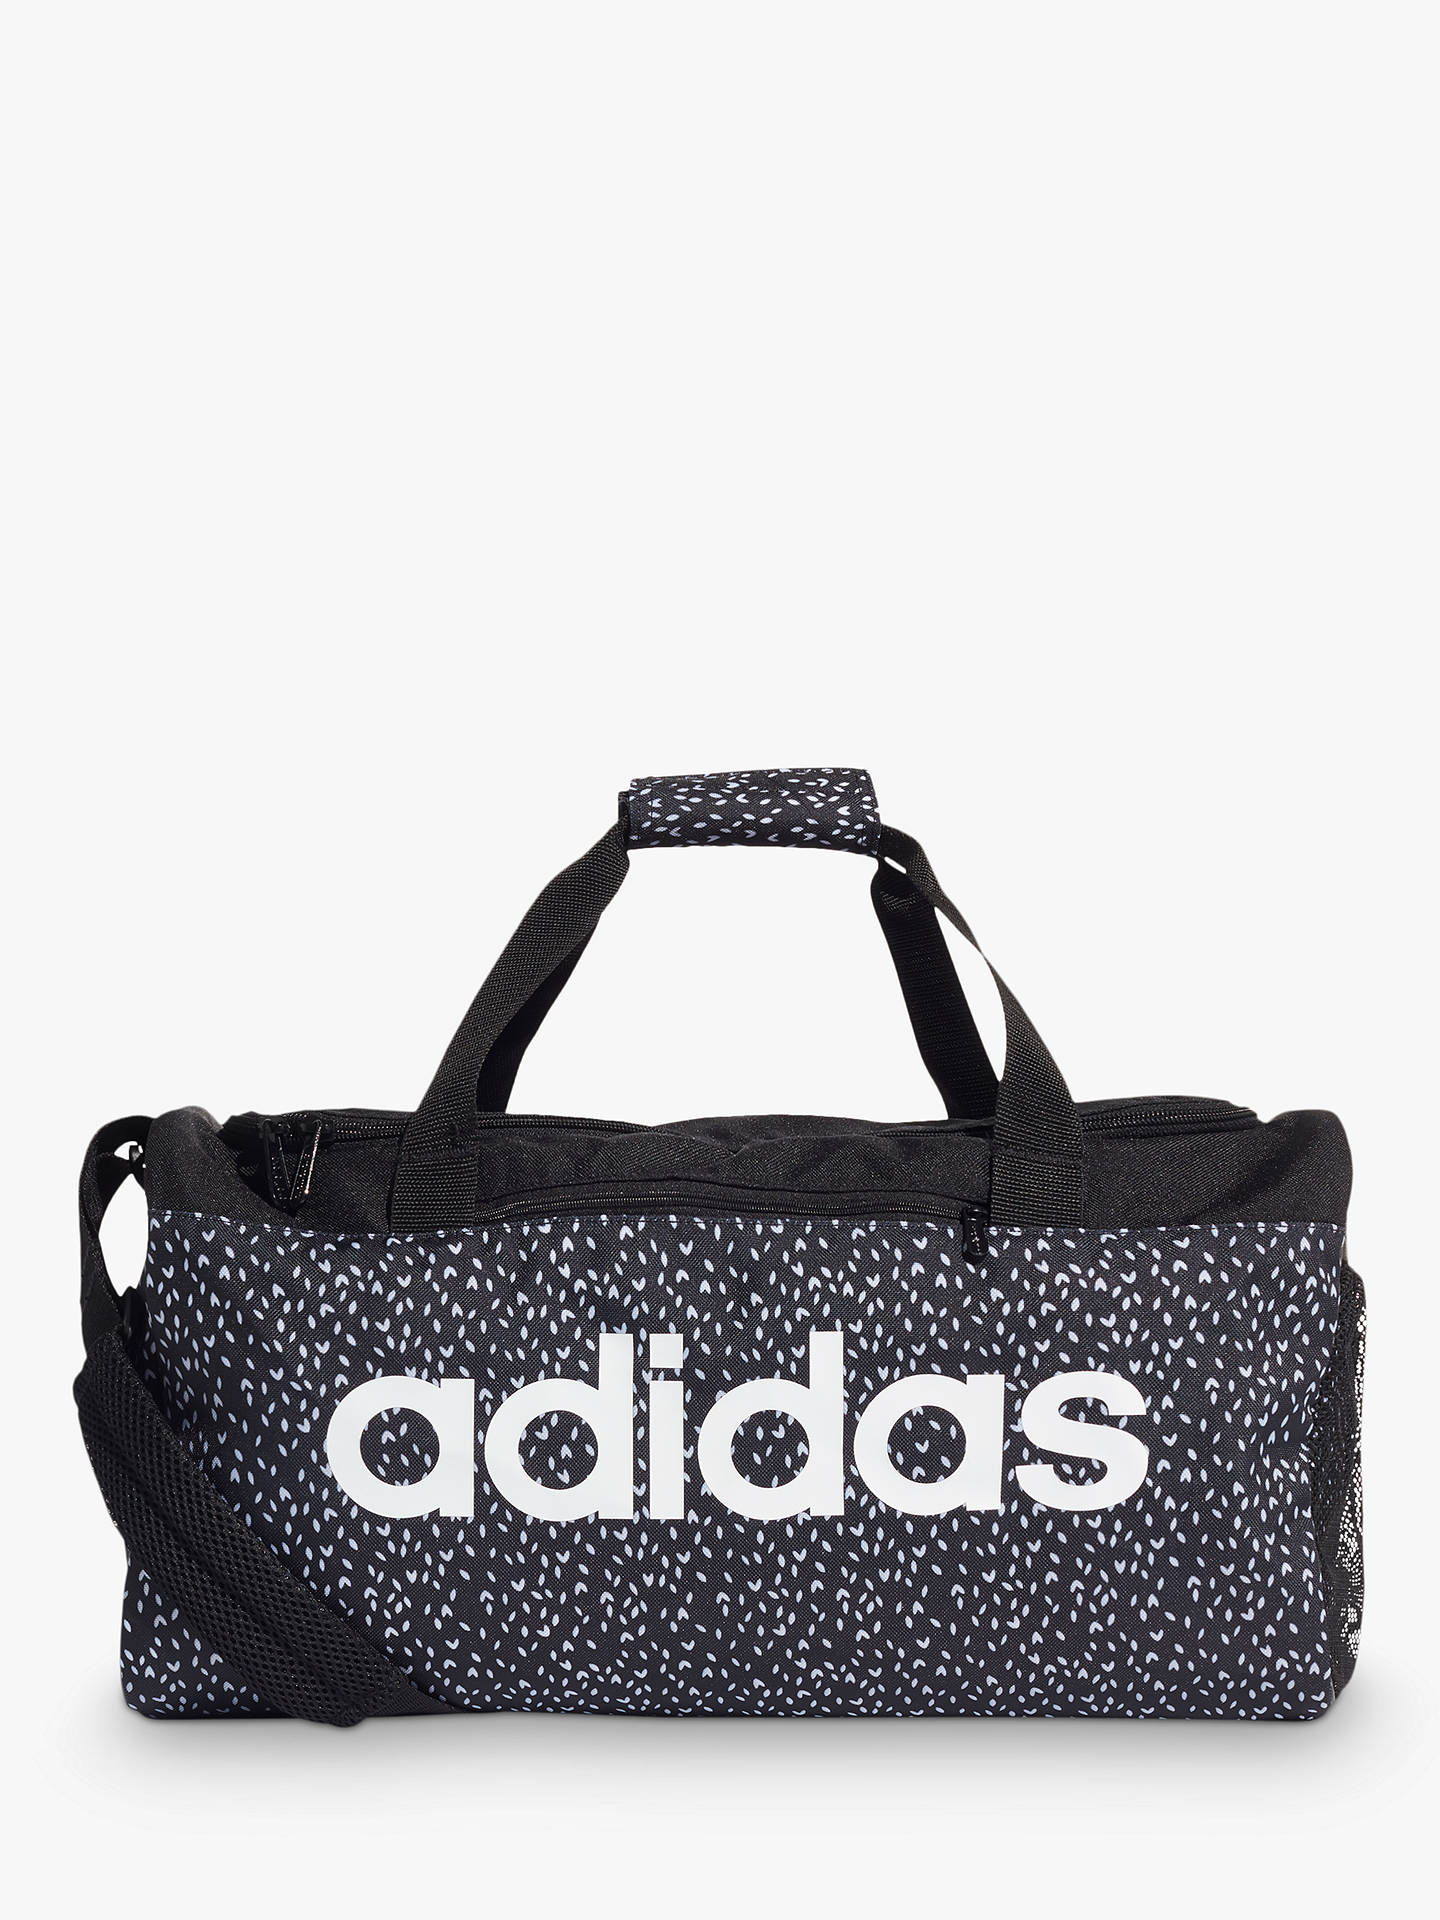 07a0909294c Buy adidas Linear Duffel Bag, Black/White Online at johnlewis.com ...